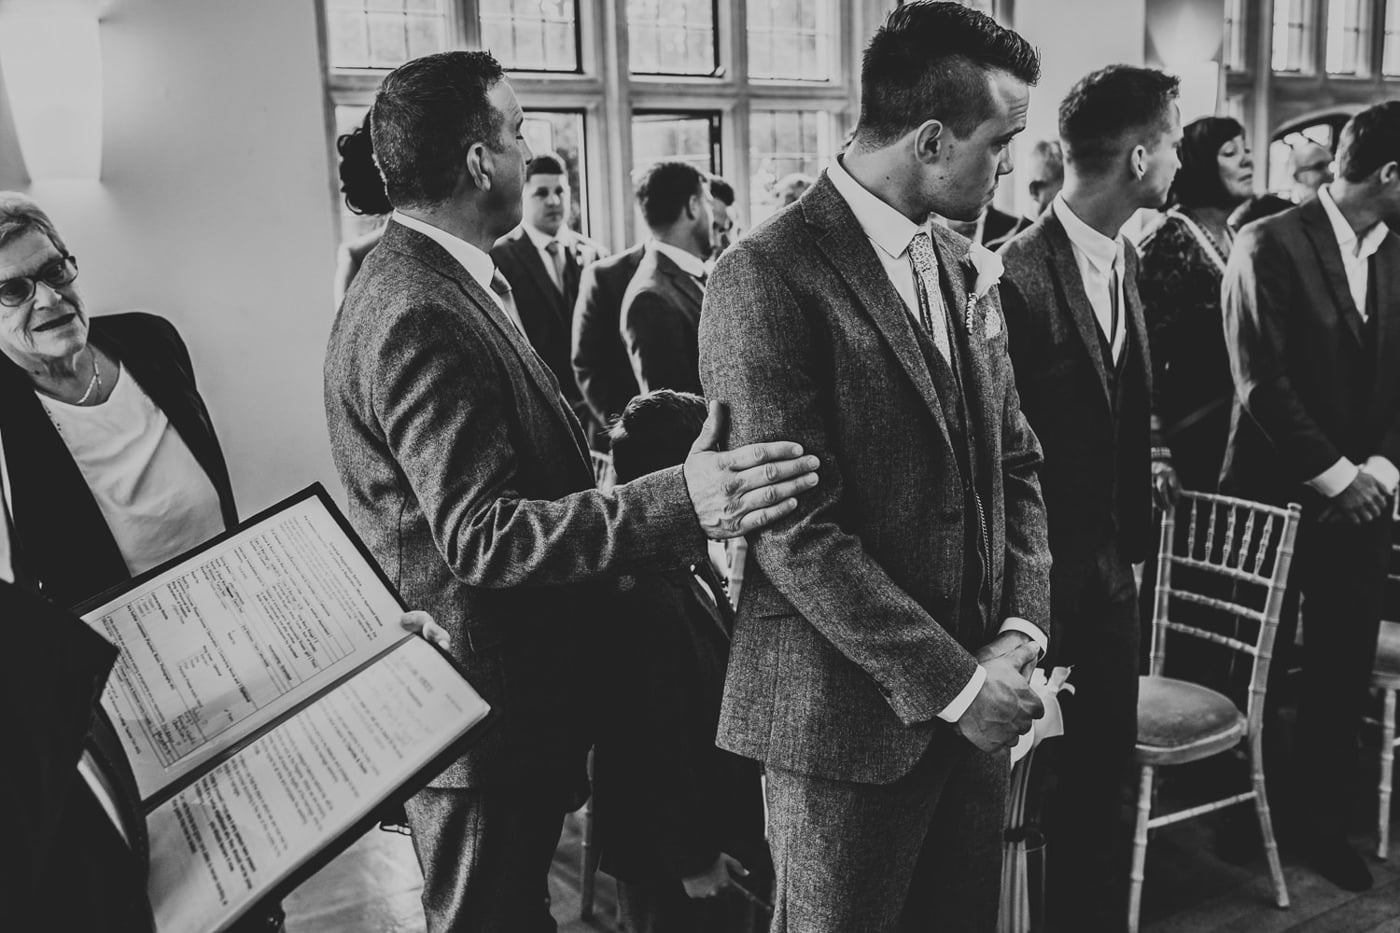 grooms dad comforting groom during wedding ceremony